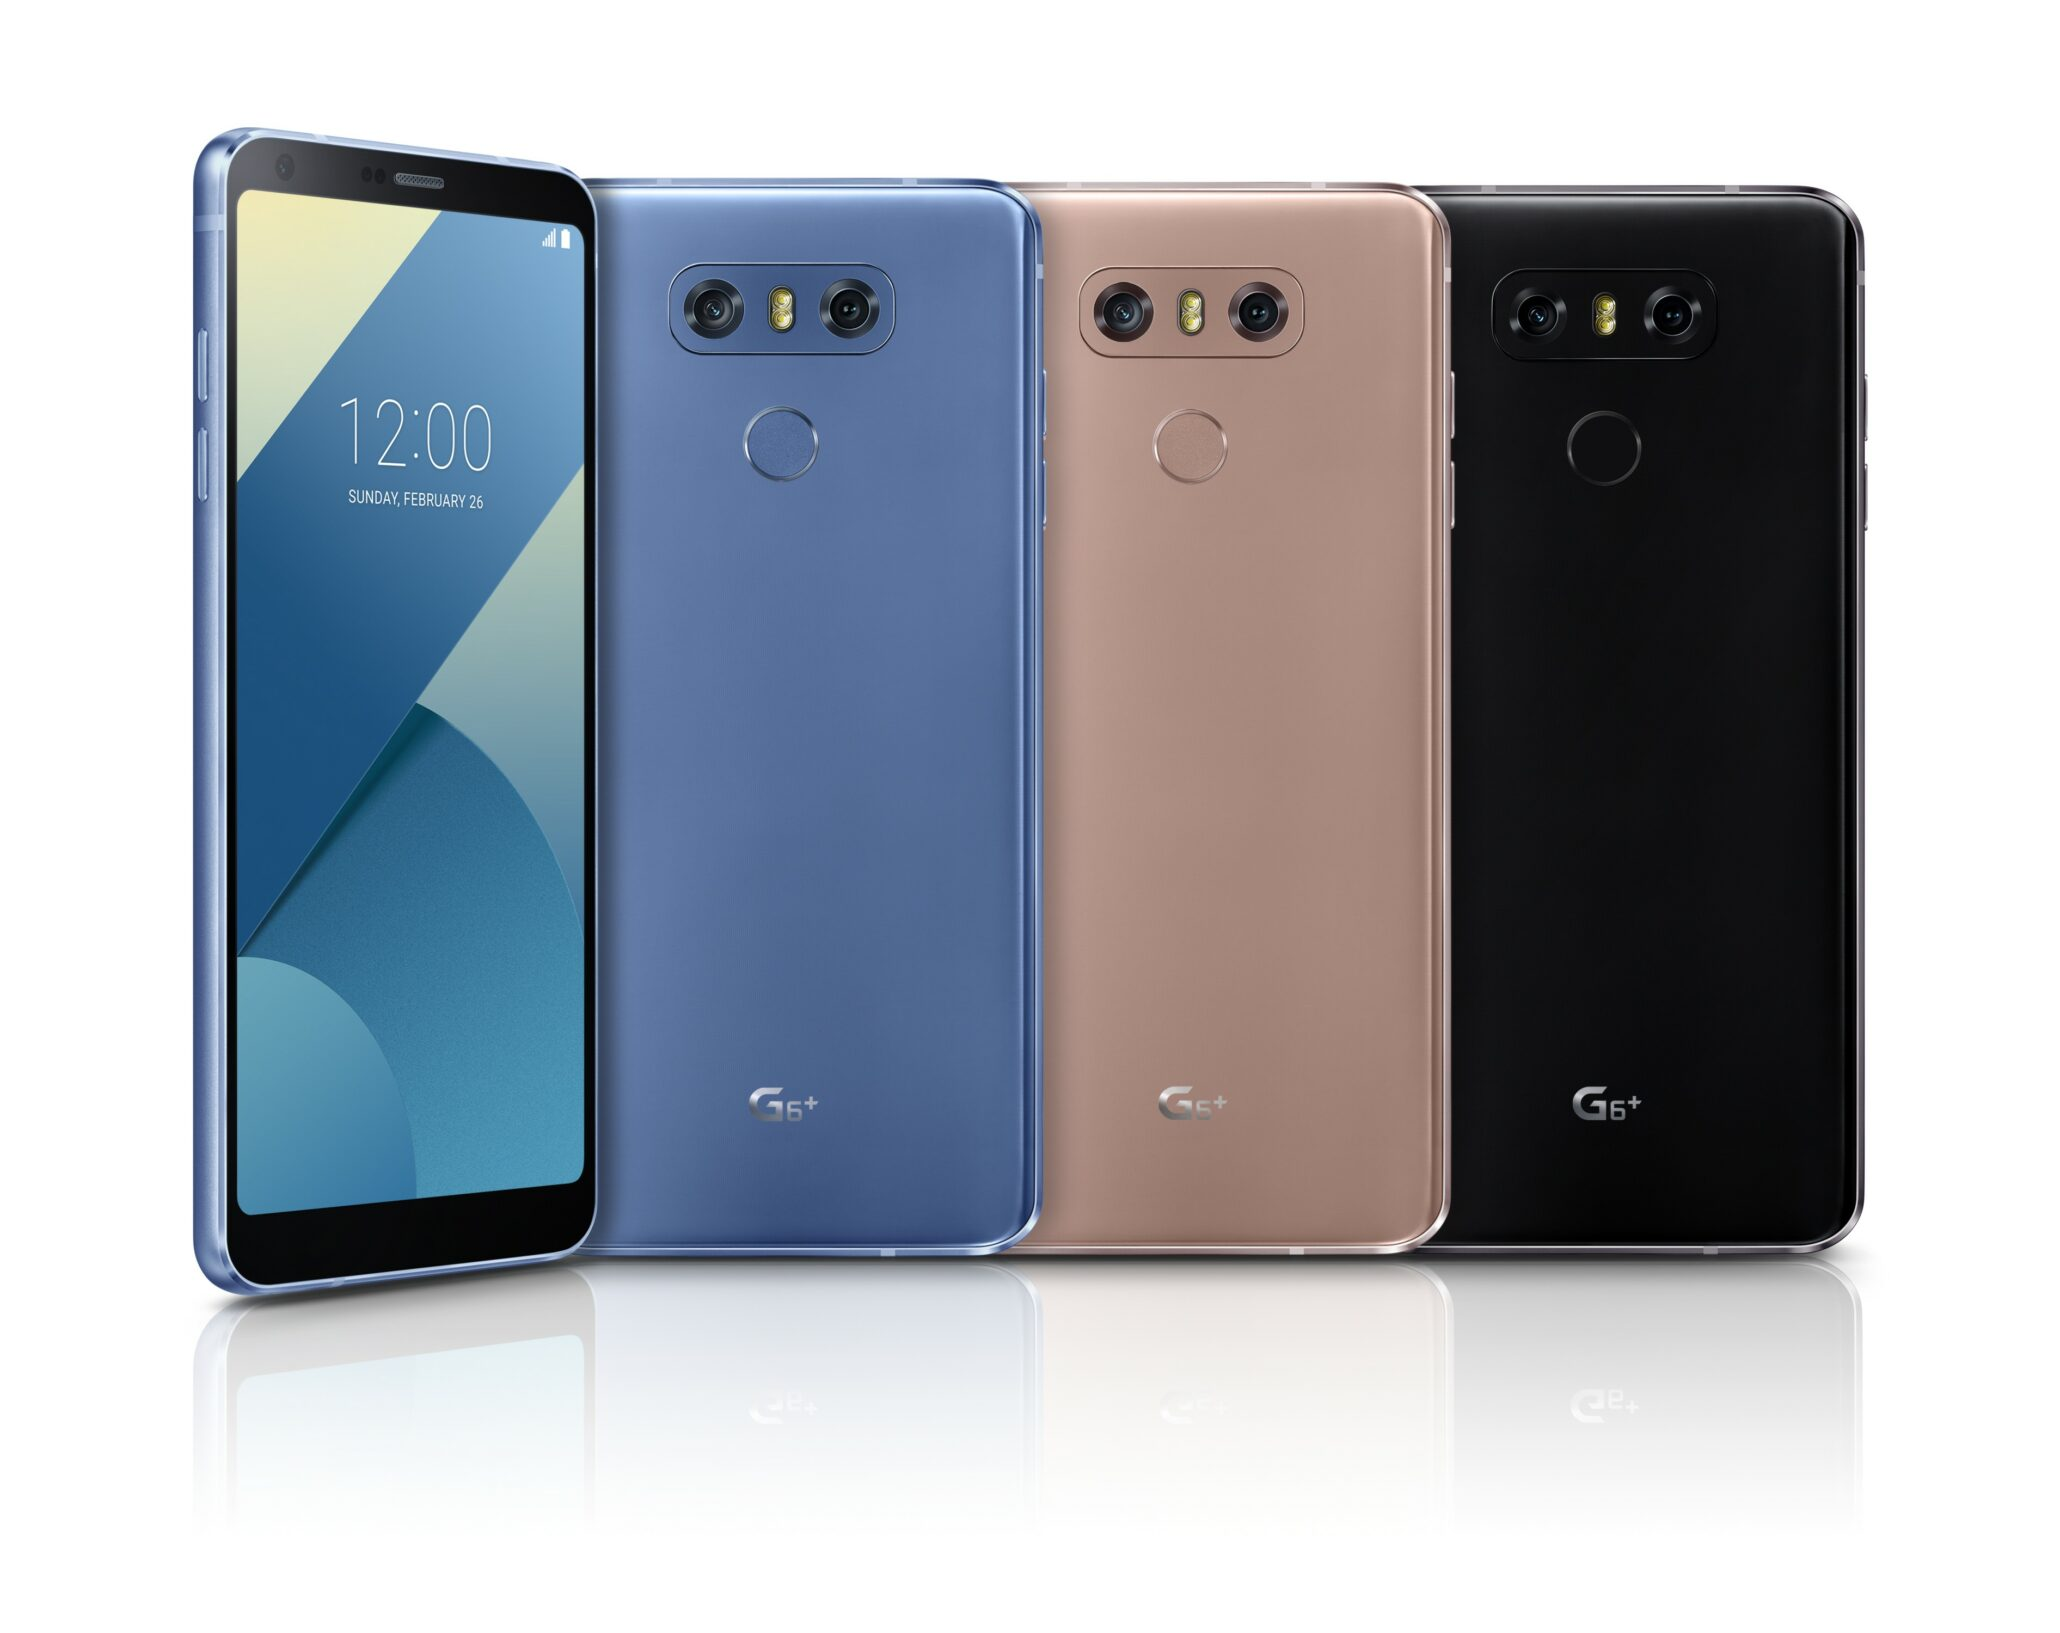 LG G6+ Comes With Massive Internal Memory, Improved Sound